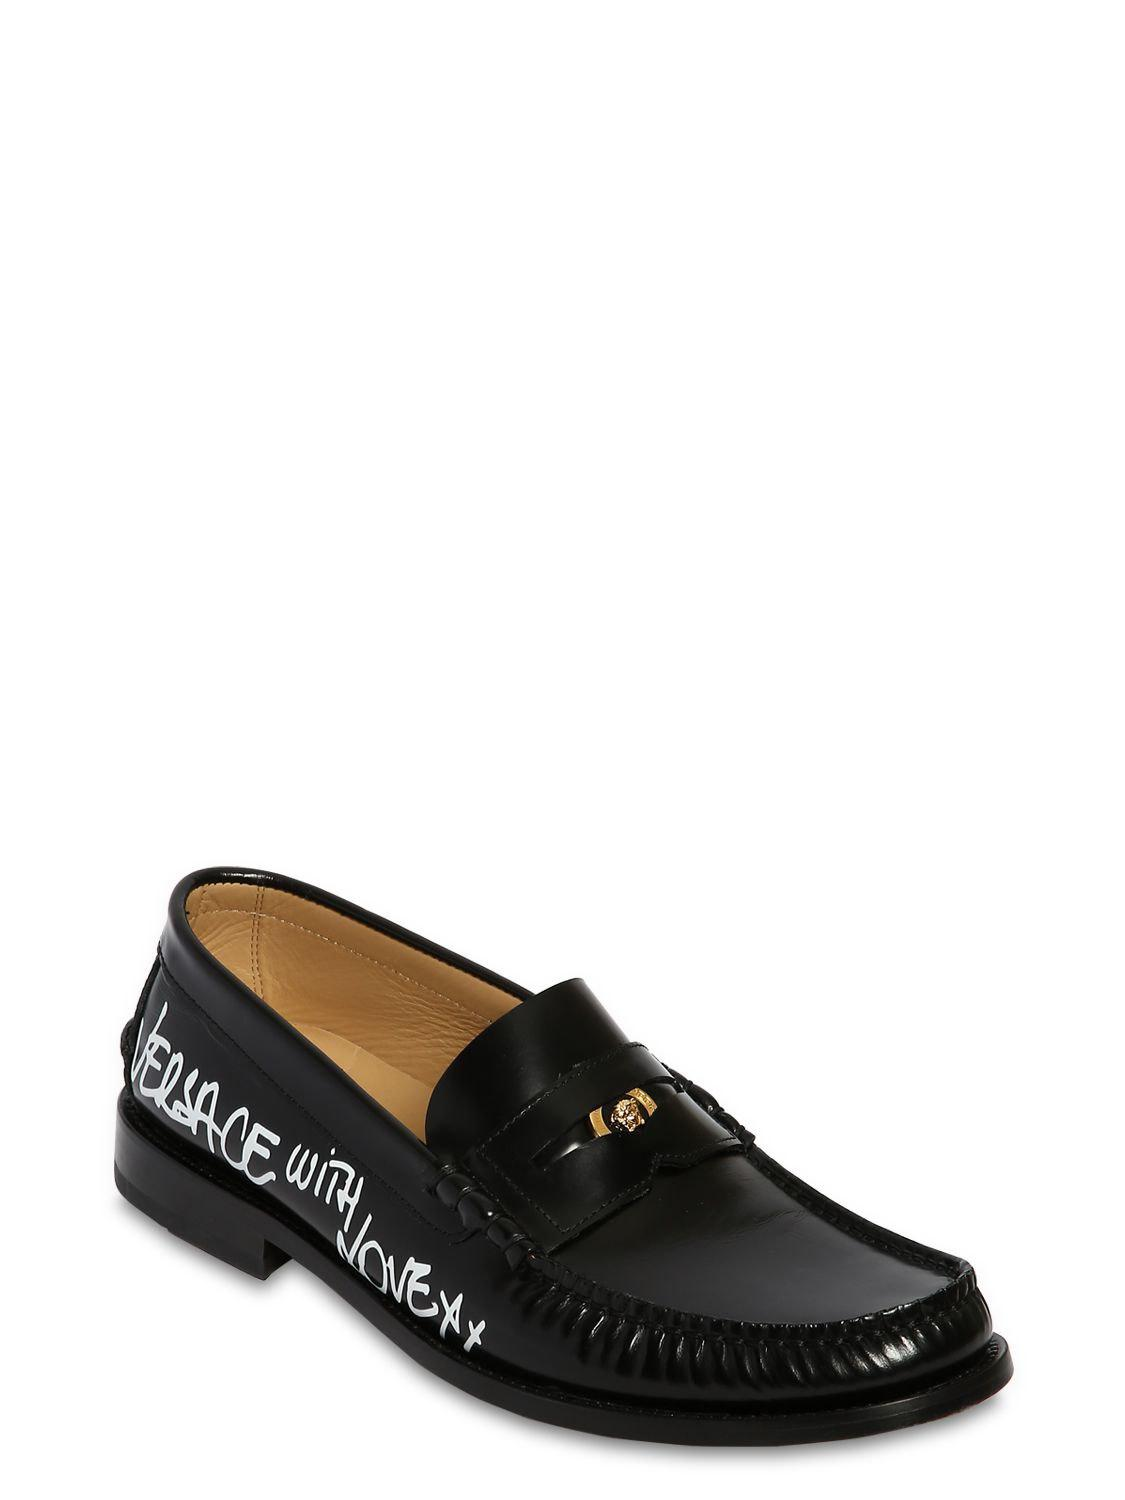 a501f9032b2 Lyst - Versace Leather Loafers W  Graffiti Printed Logo in Black for Men